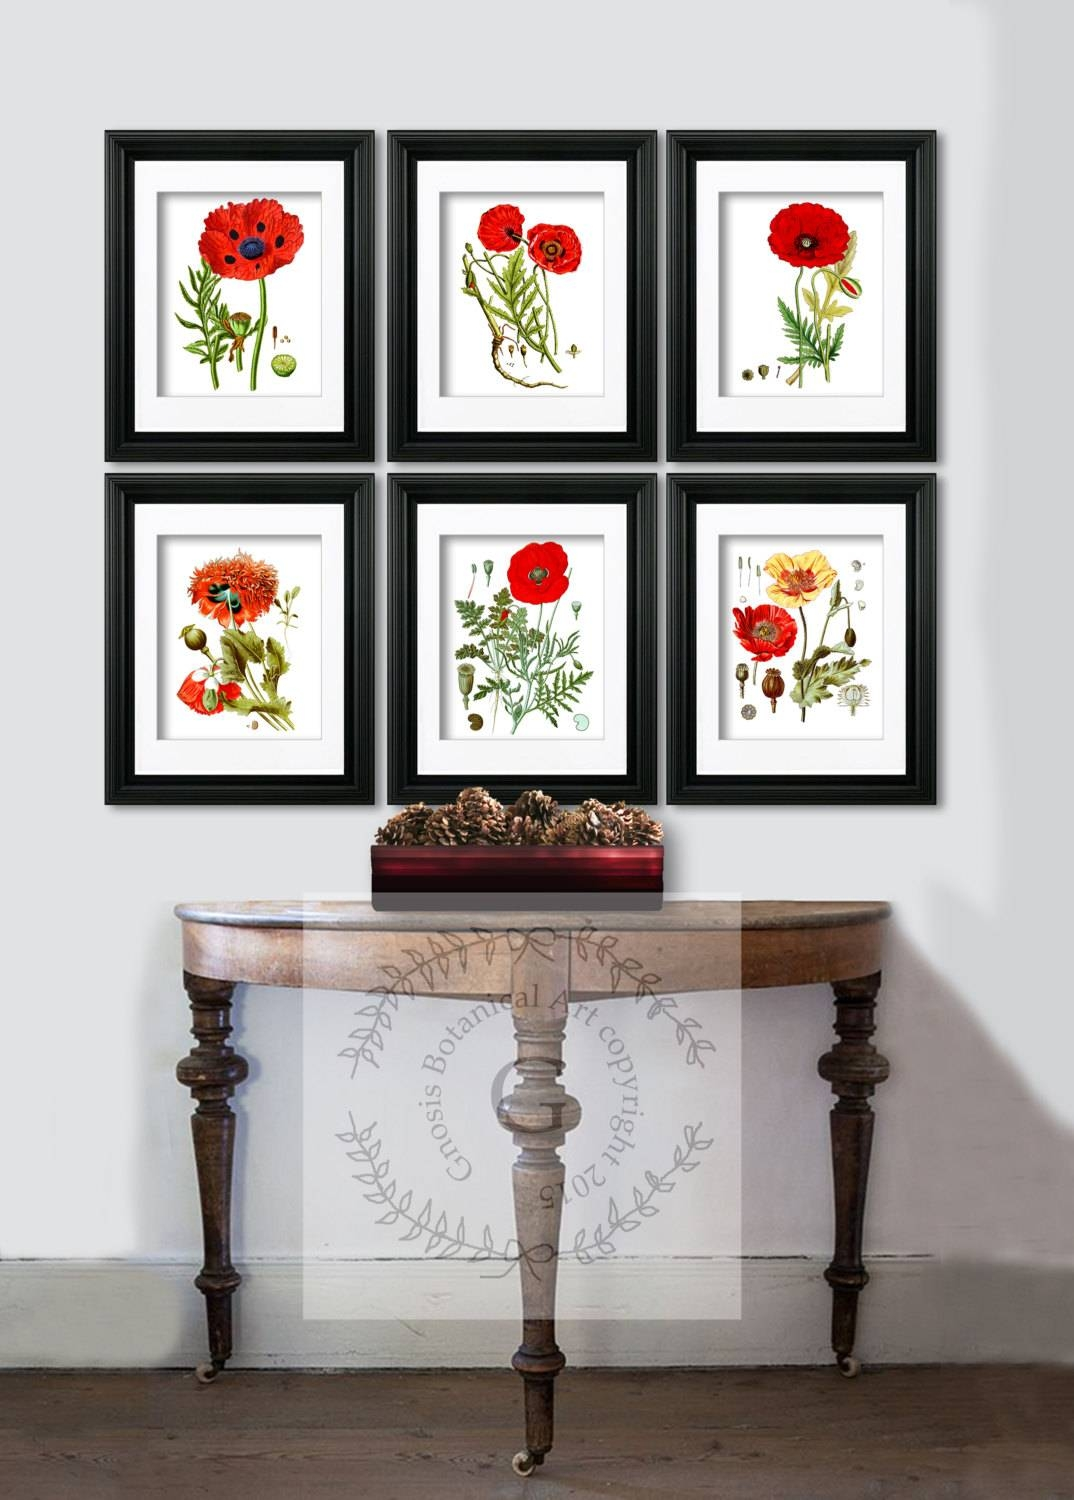 Red Poppy Decor Botanical Prints Red Flowers Poppy Wall Art With Regard To 2017 Wall Art Print Sets (View 7 of 20)